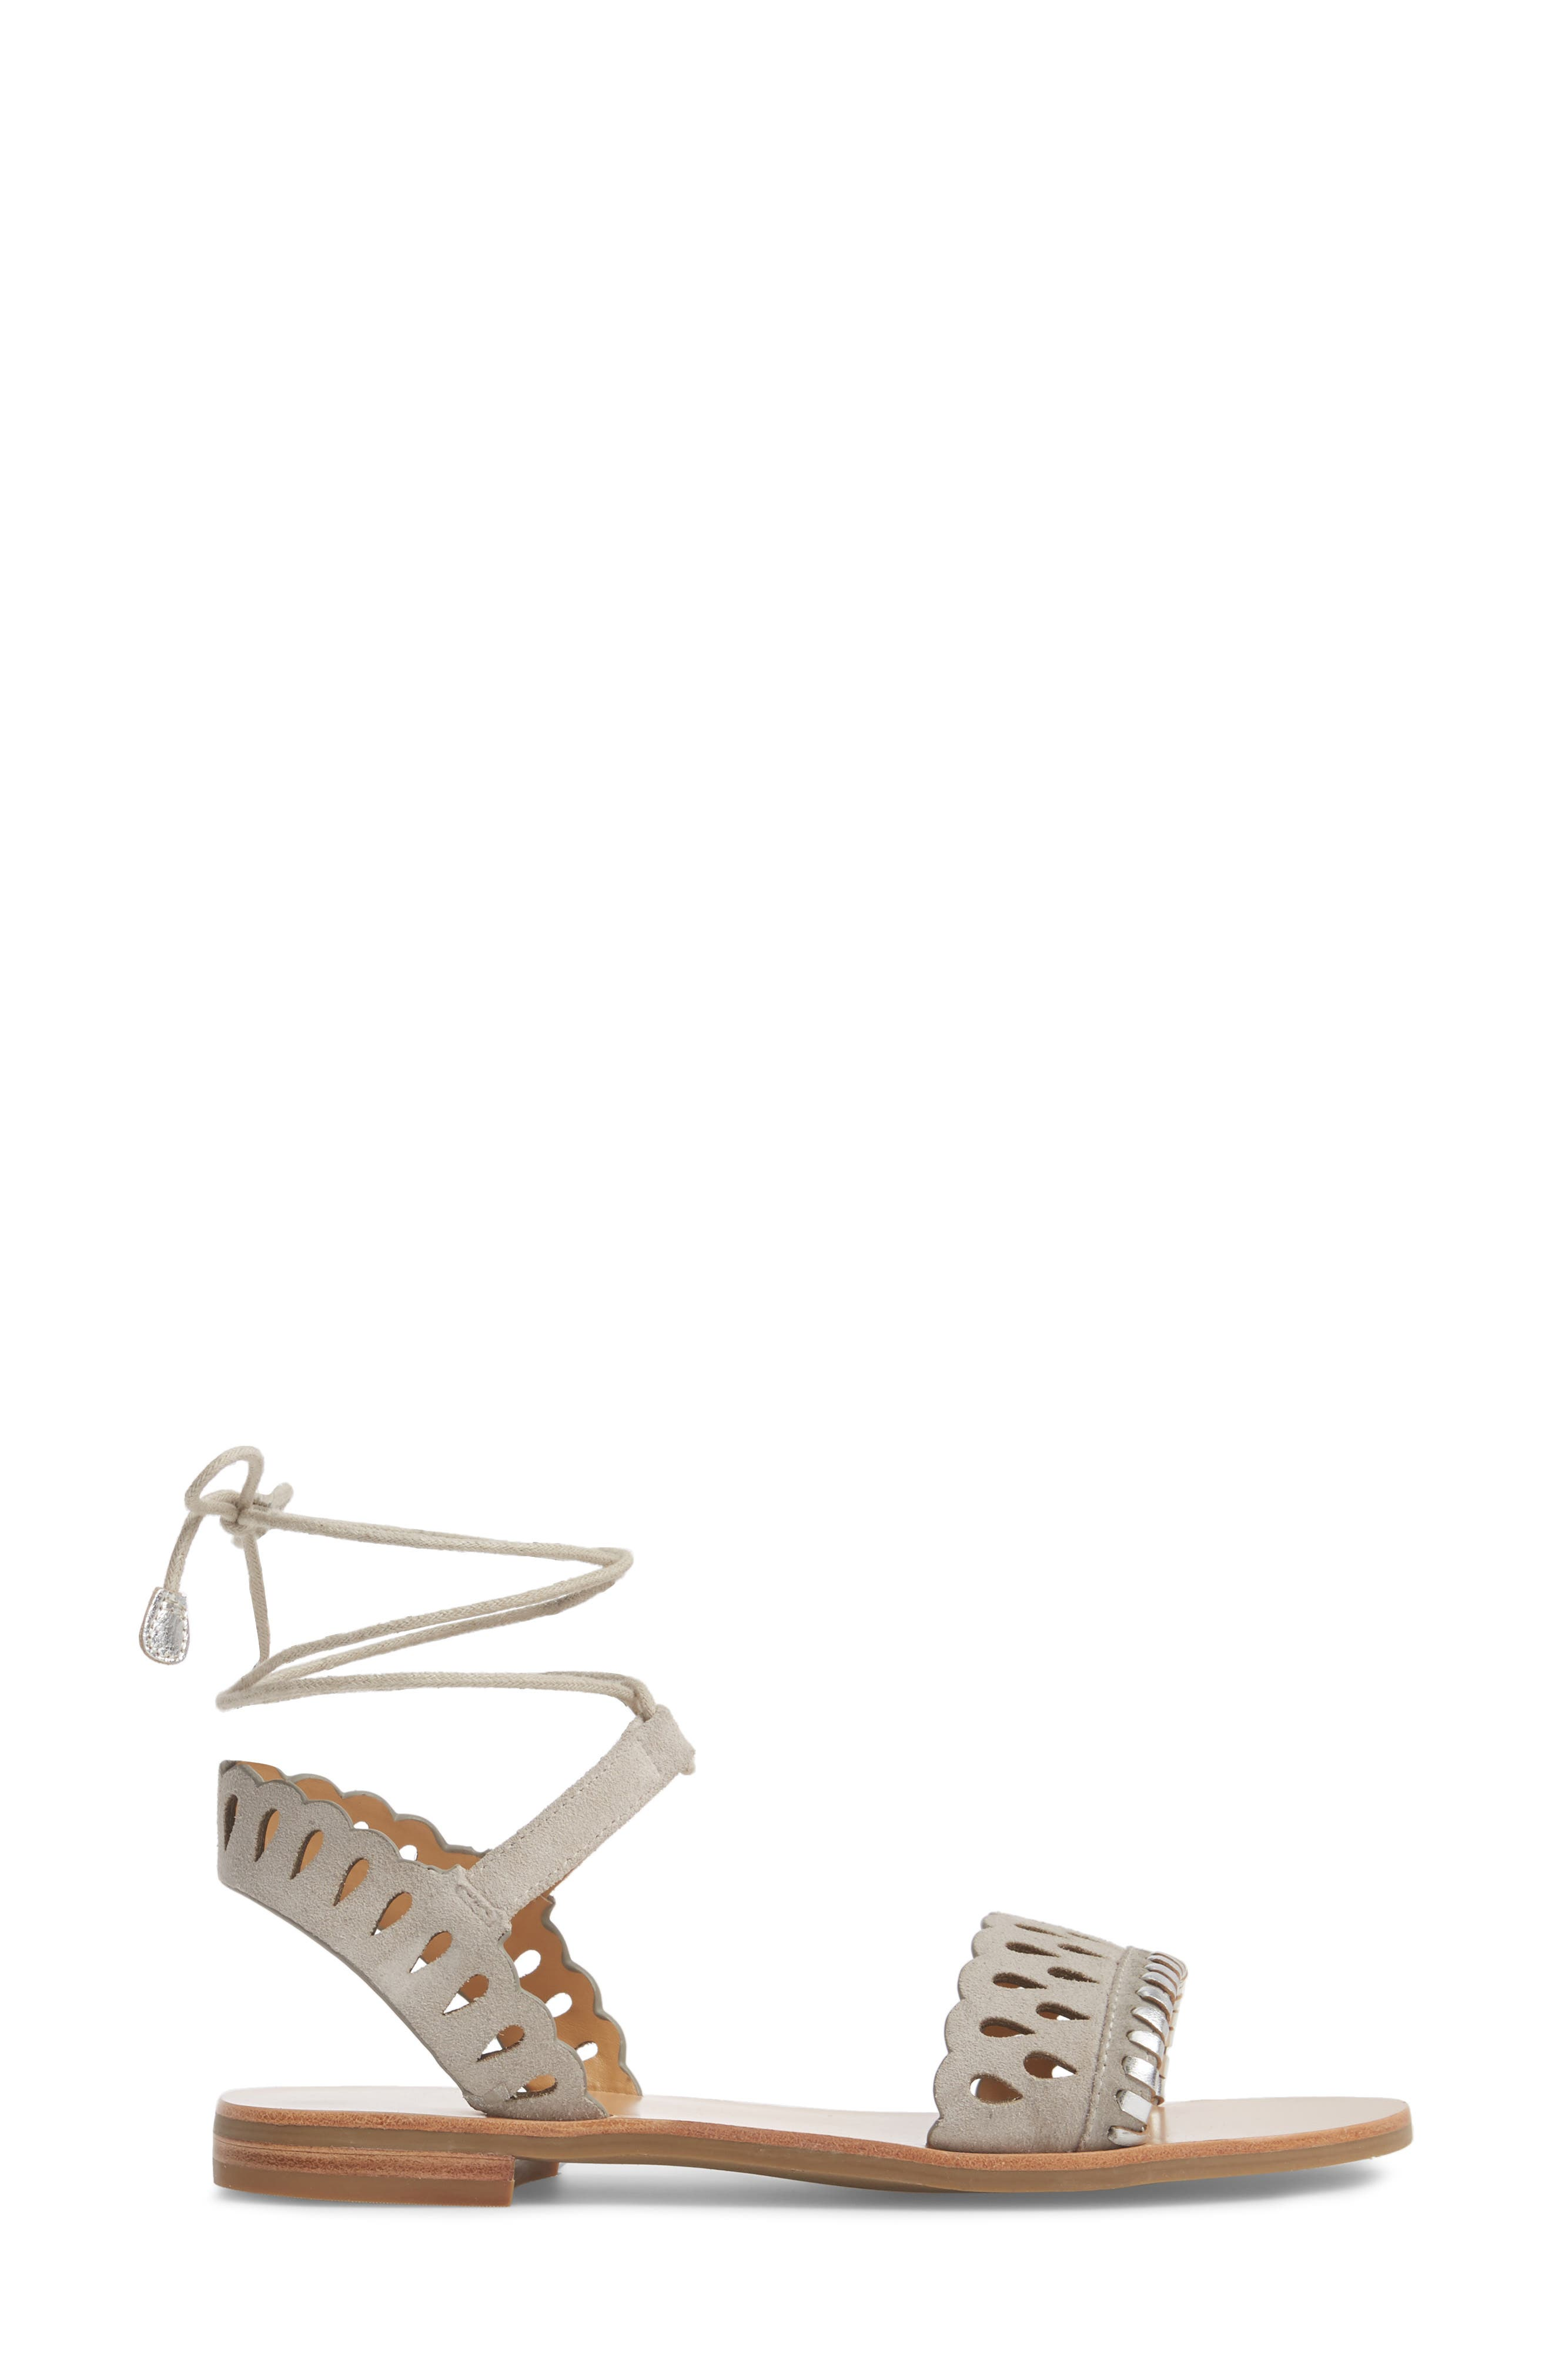 Ruby Perforated Sandal,                             Alternate thumbnail 3, color,                             027